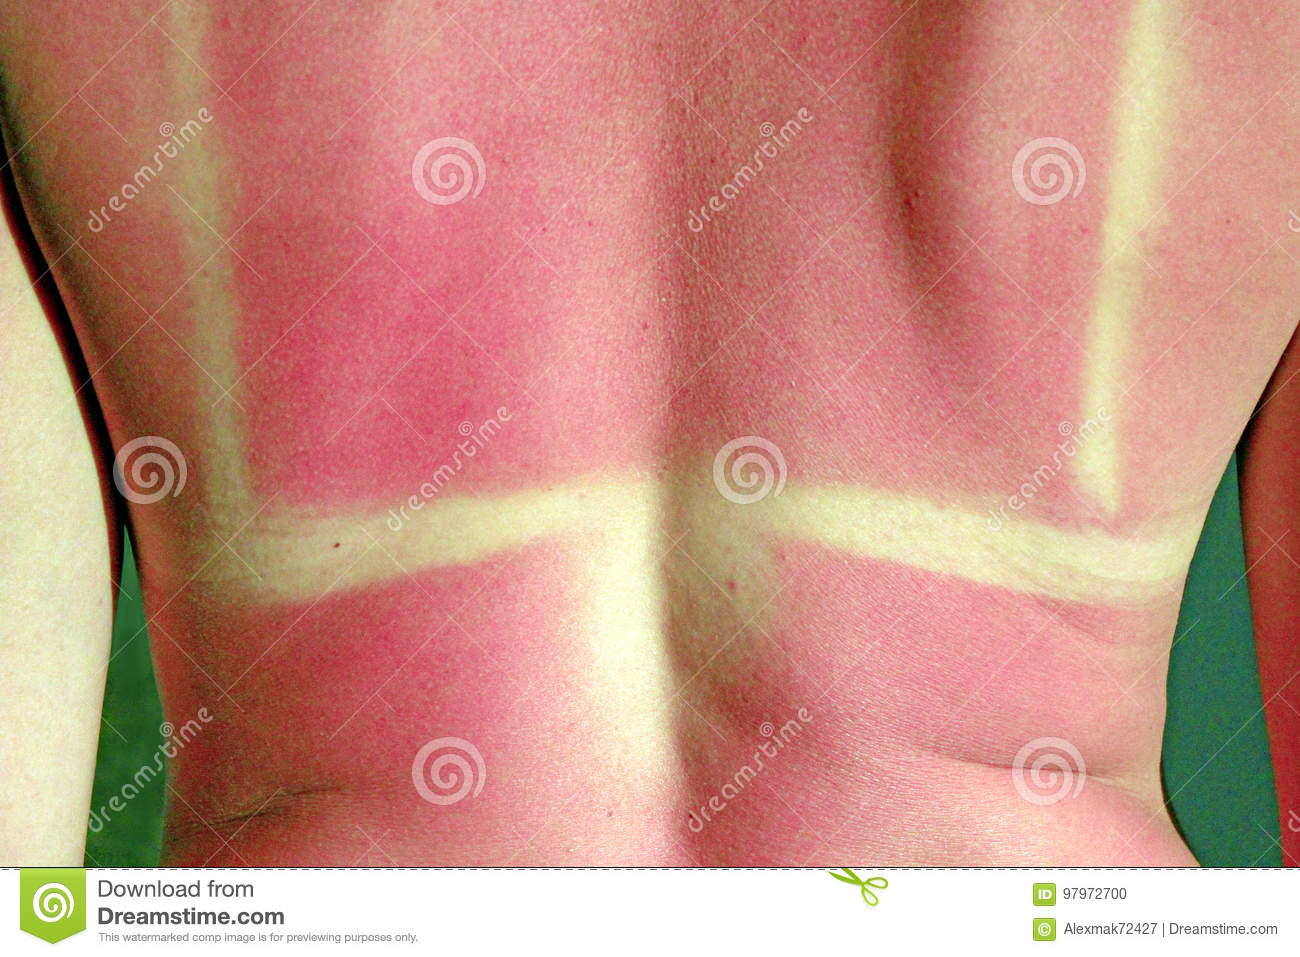 Burn From The Sun On The Body Stock Photo - Image of girl